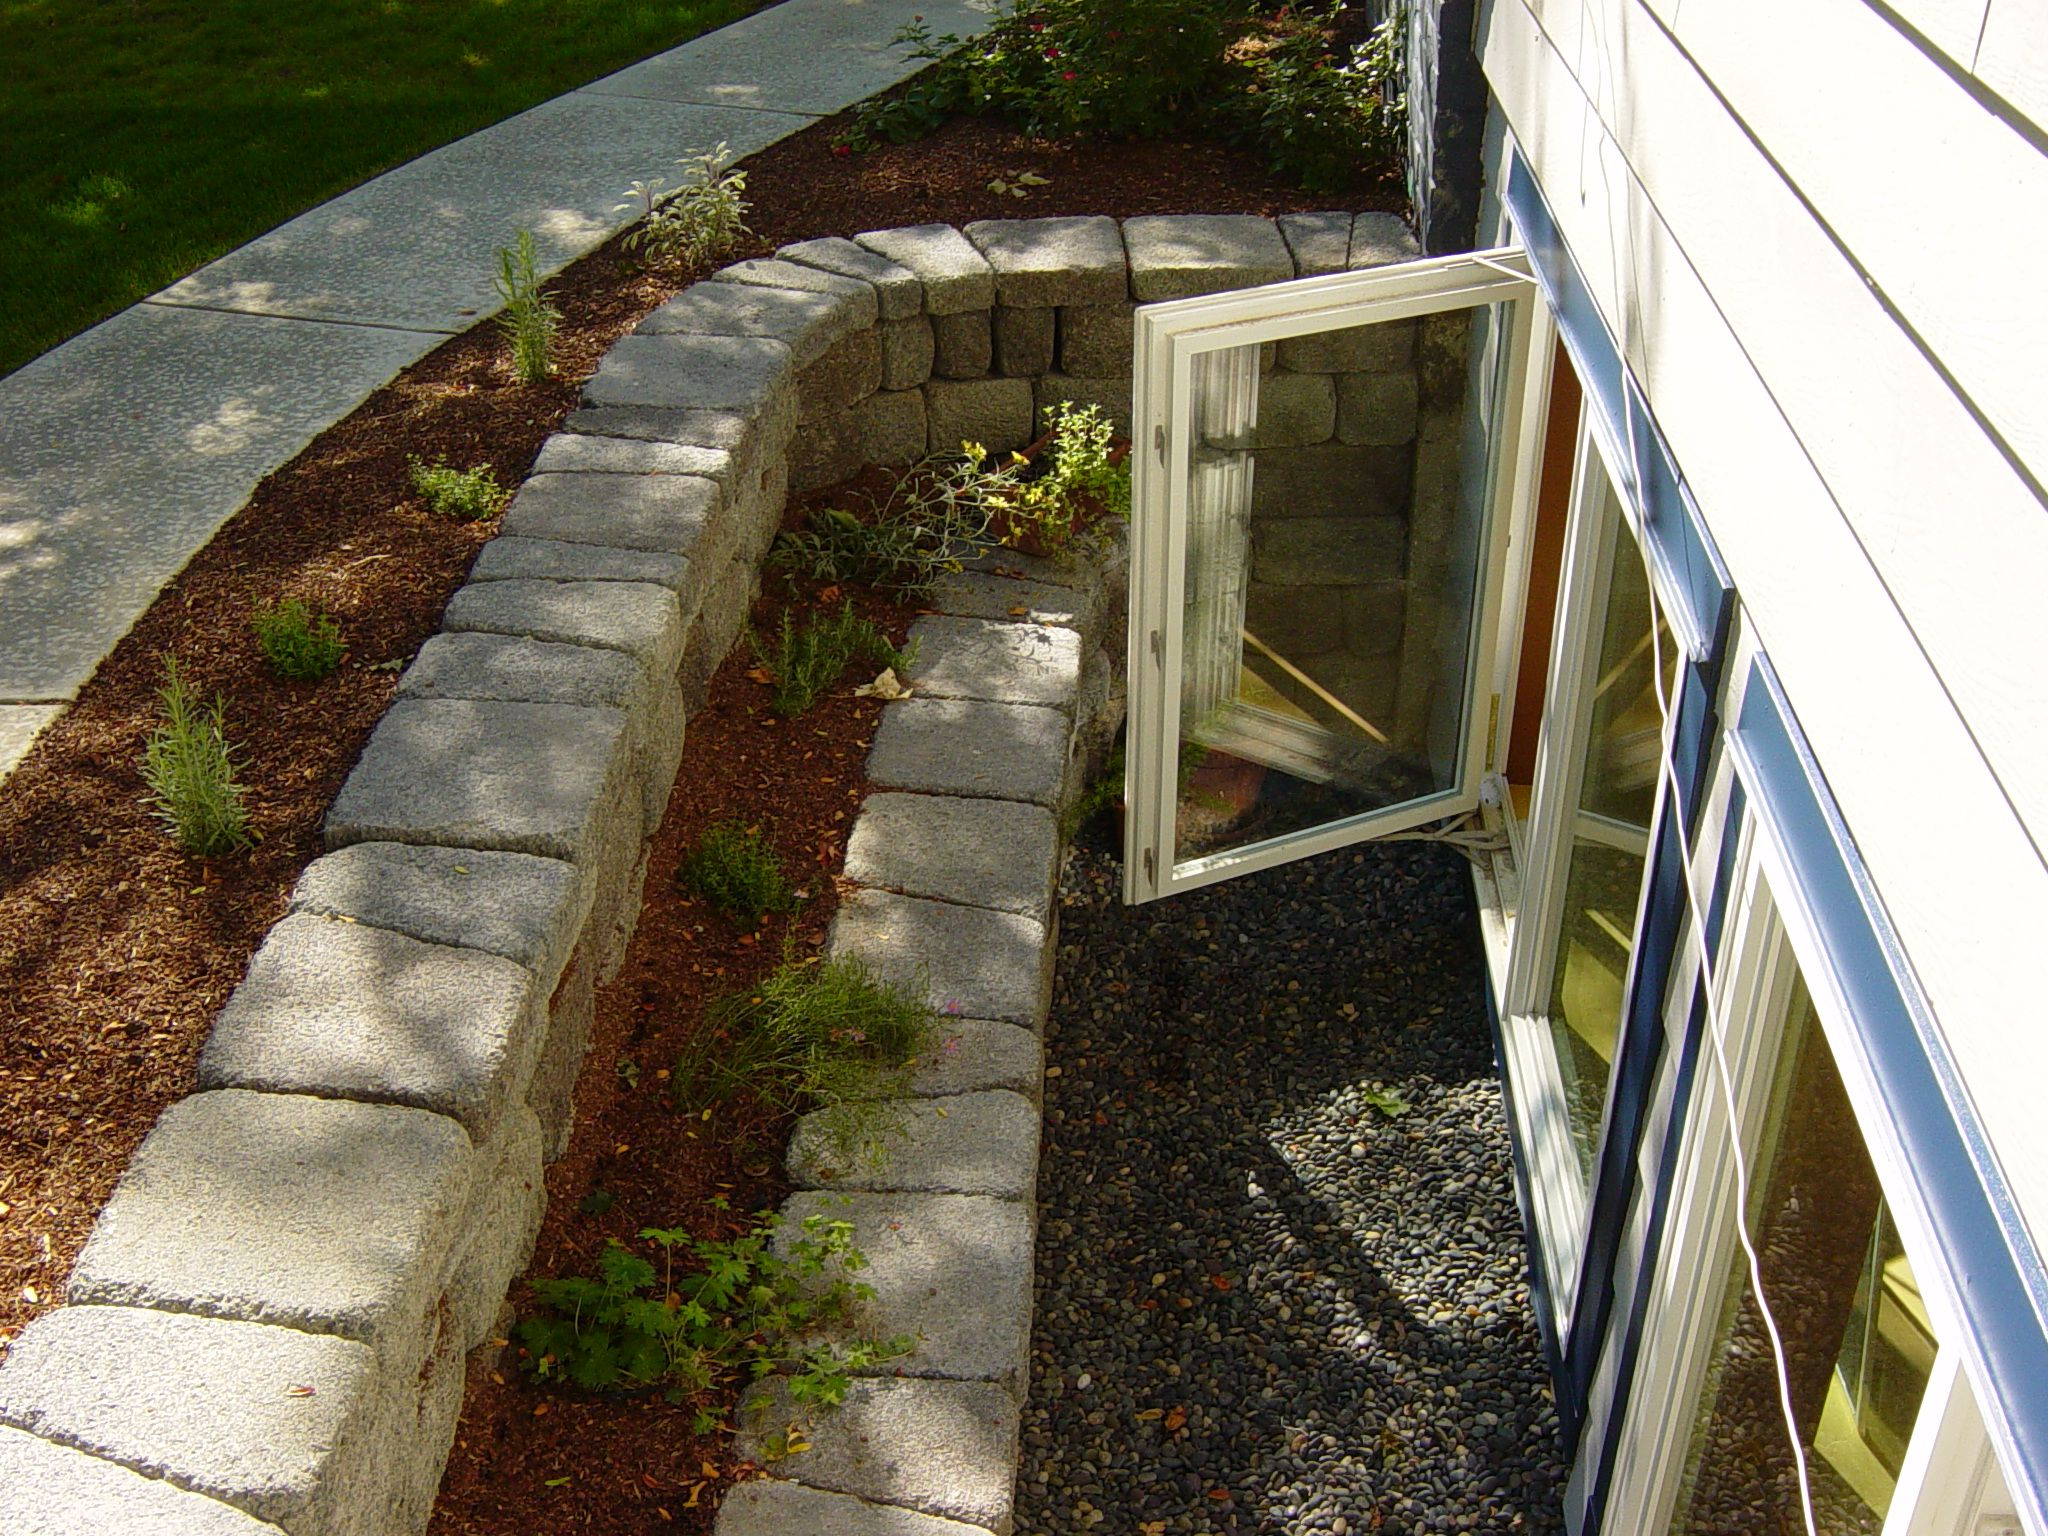 Tiered egress window well Safe escape route lots of light and